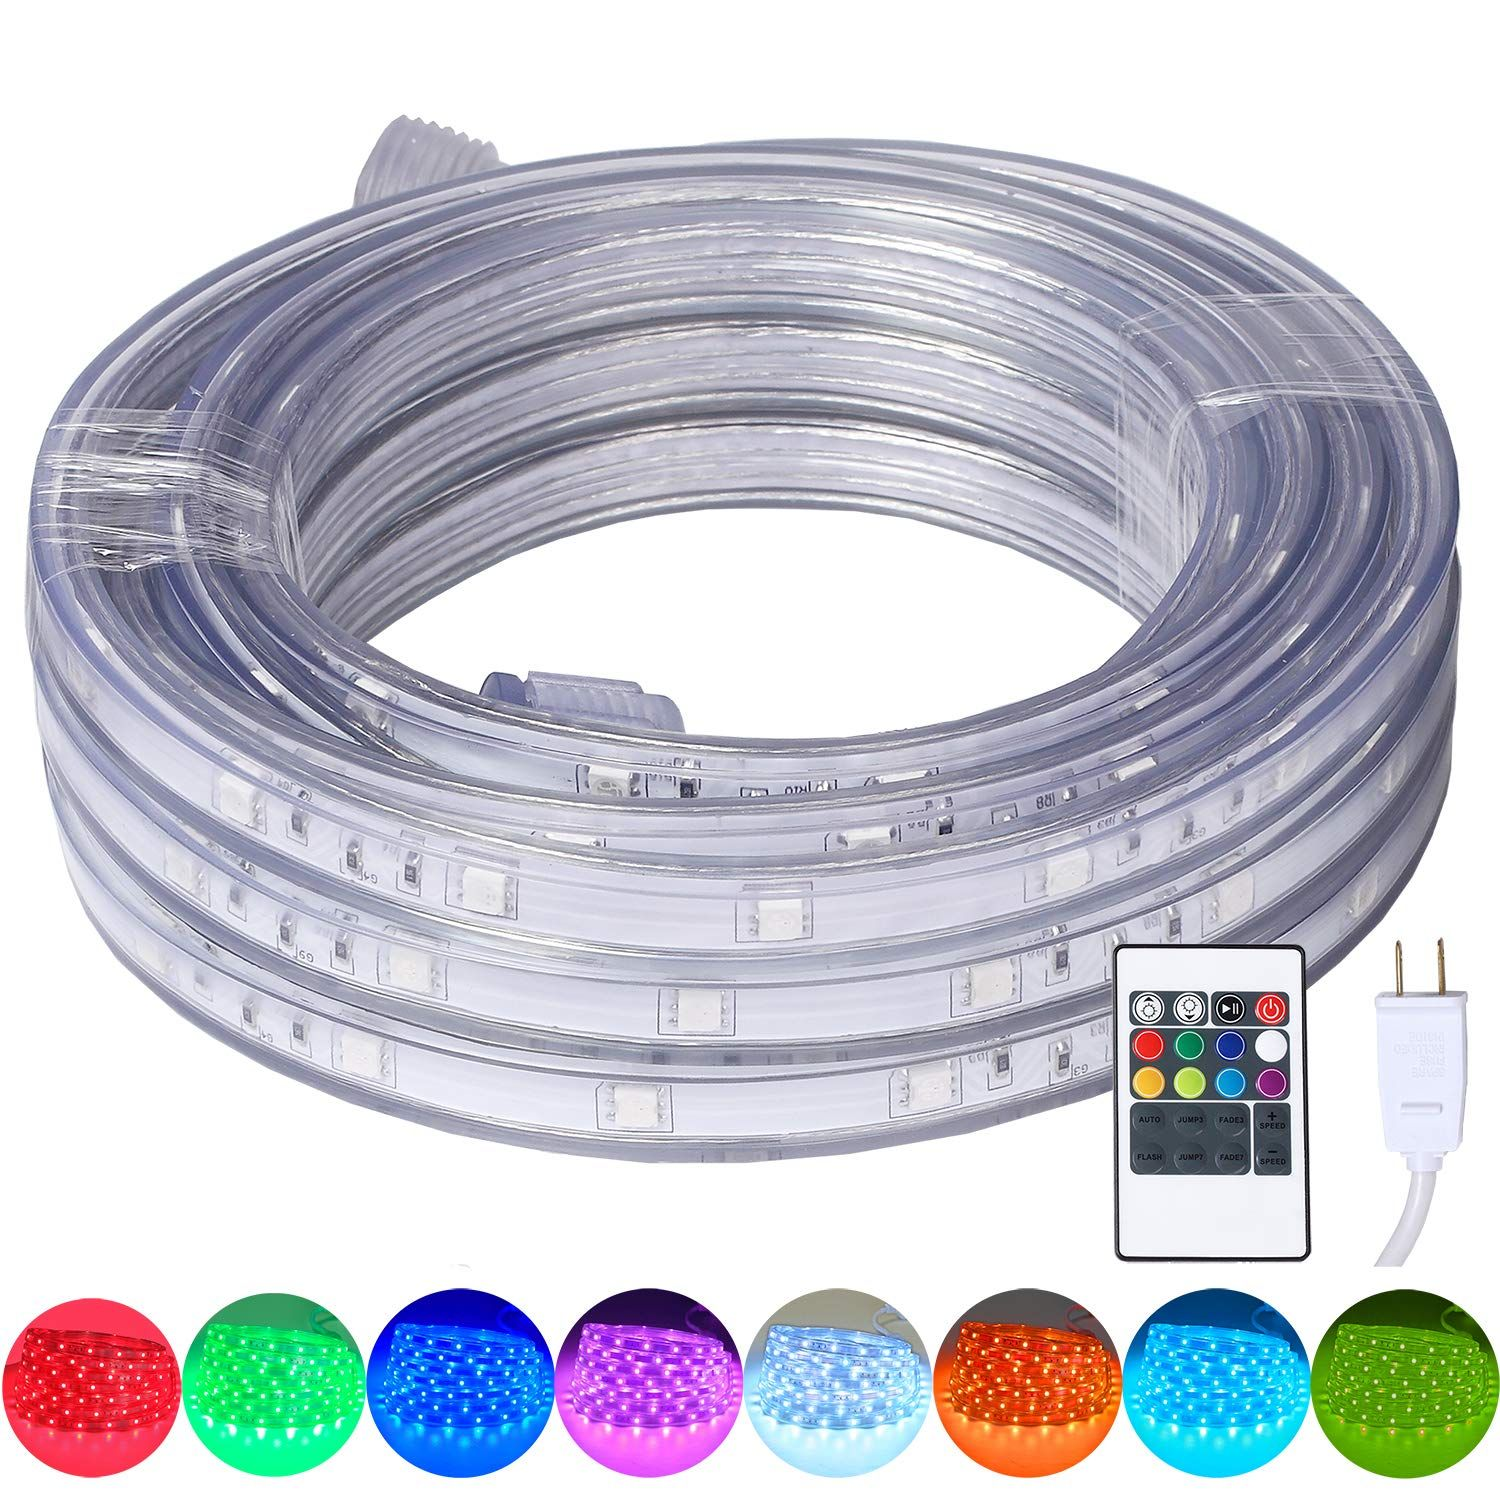 16 4 Feet Flat Flexible Led Rope Lights Color Changing Rgb Strip Light With Remote Control 8 Colors Multiple Mod In 2020 Led Rope Lights Novelty Lighting Rope Lights